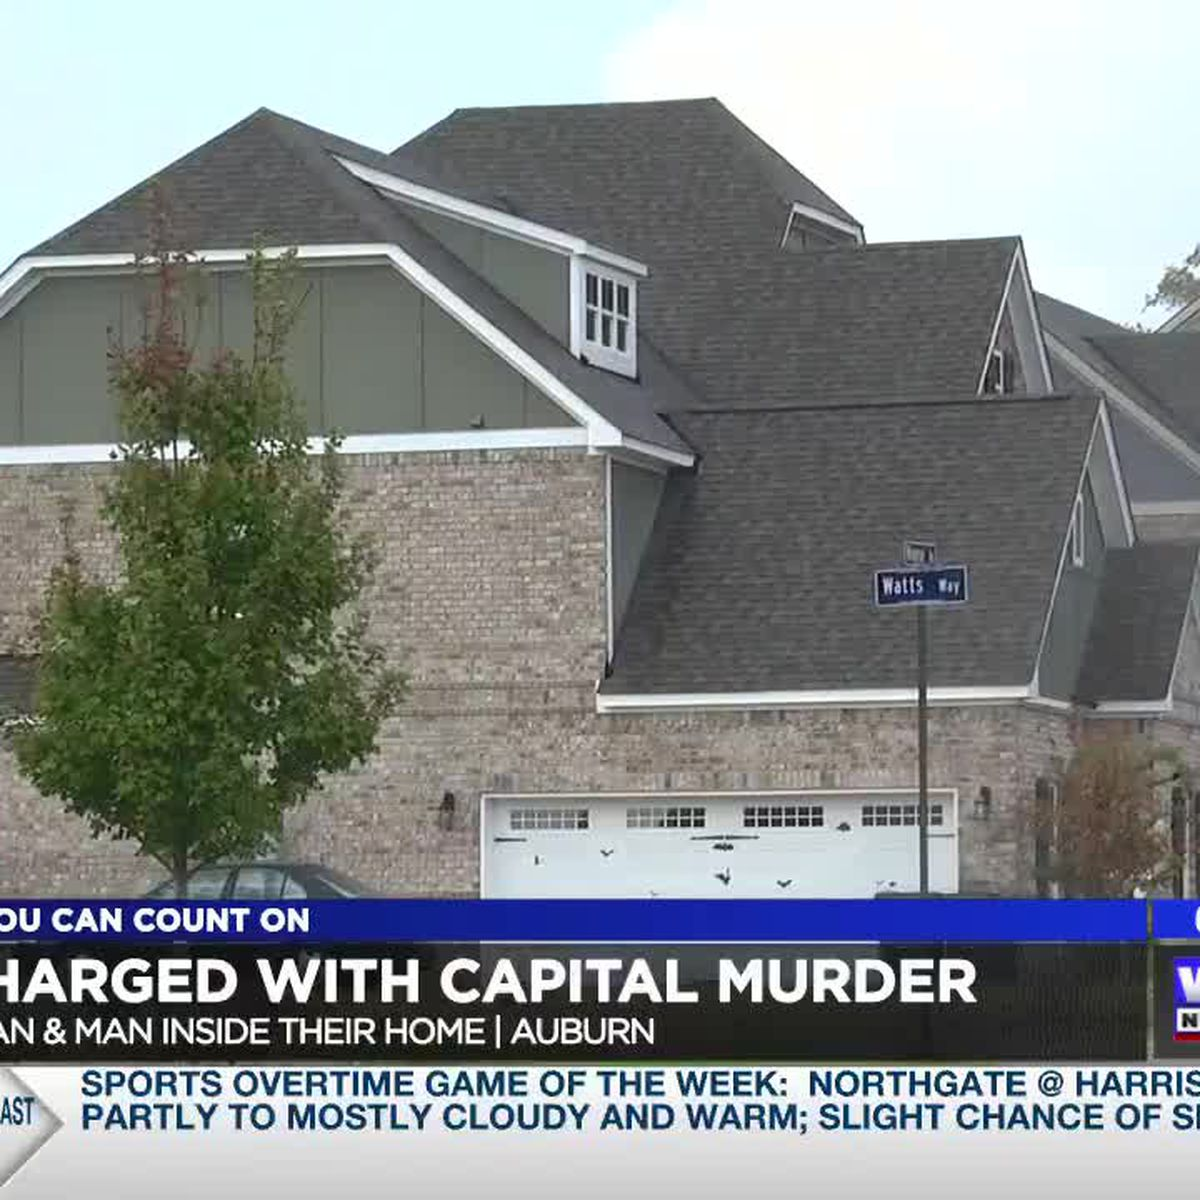 UPDATE: Man charged with capital murder after stabbing Auburn man, woman inside their home